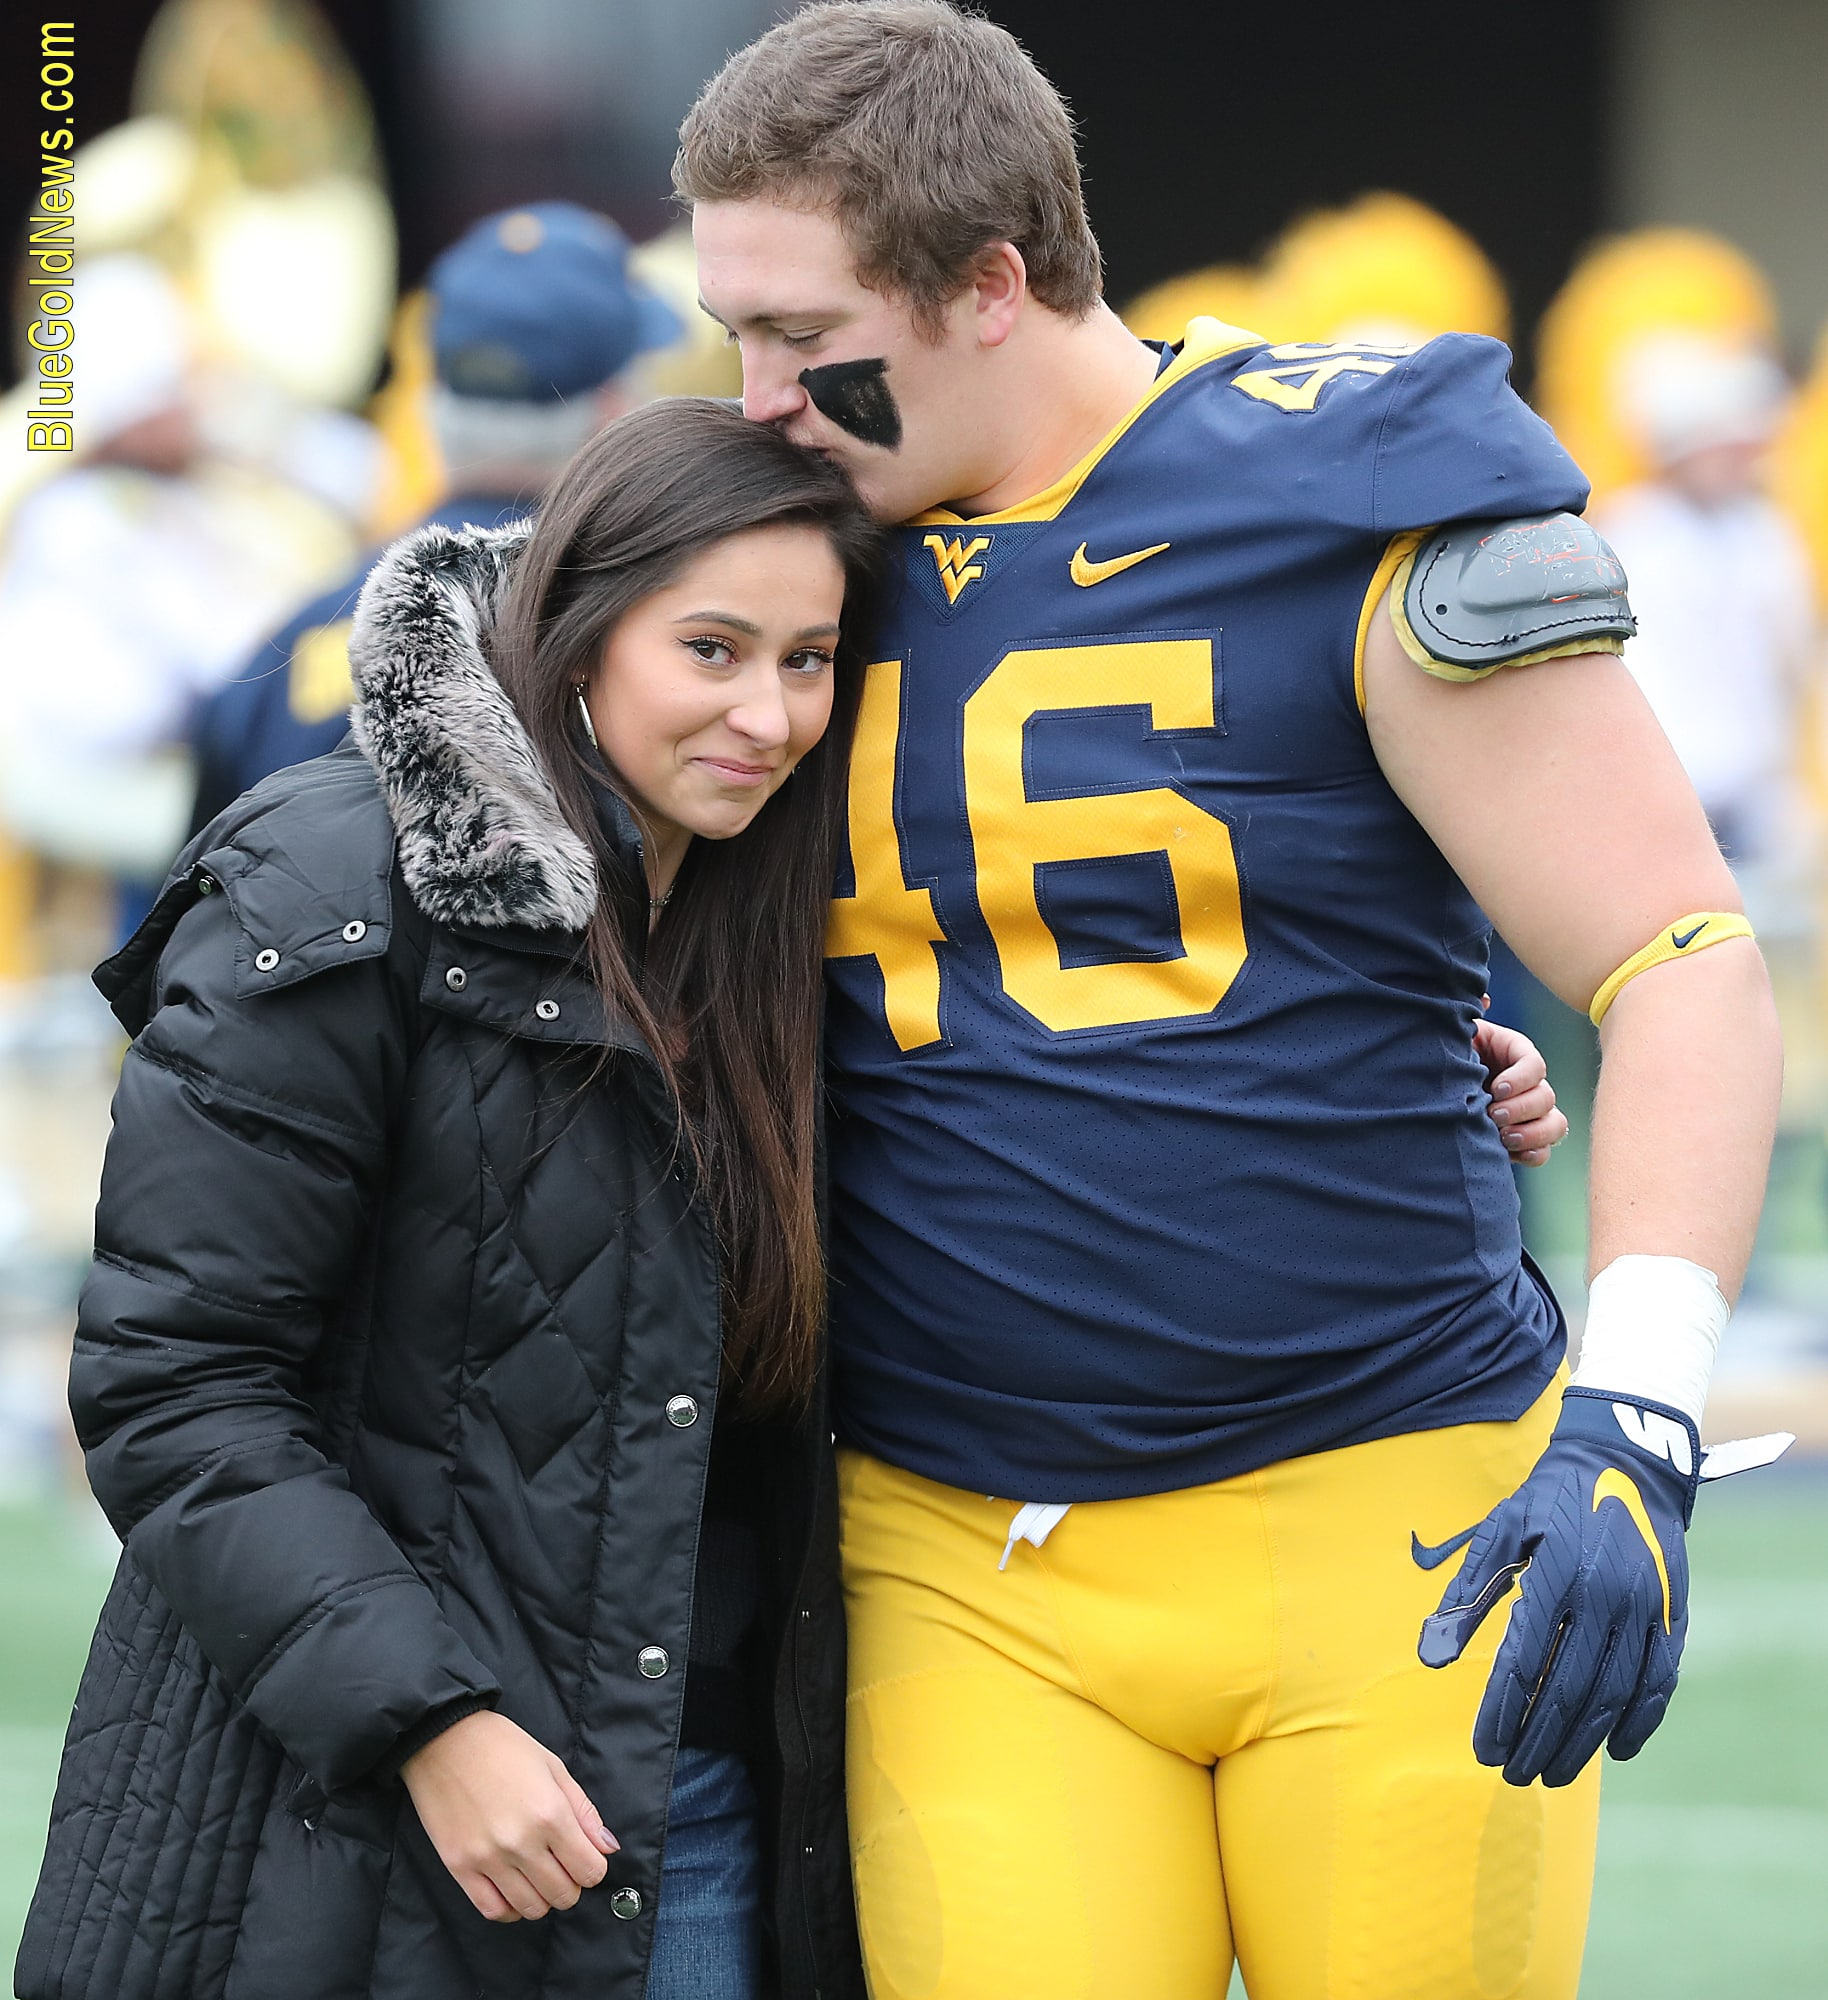 West Virginia senior Reese Donahue greets fiancee Sarah Moore